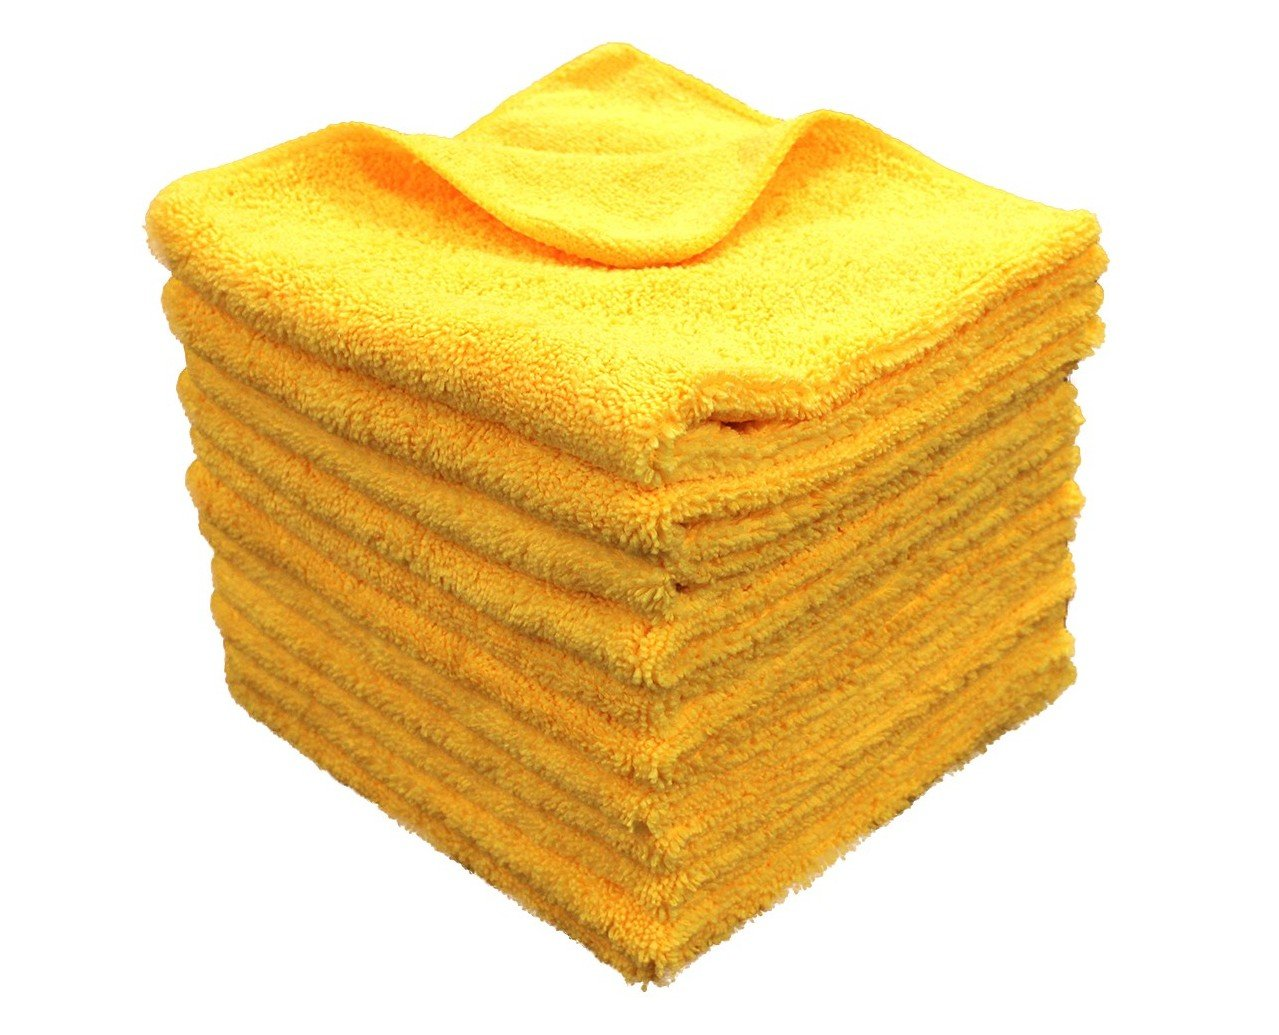 Imperial Front 24 PREMIUM PLUSH GOLD LARGE 16''X16'' 330GSM HEAVYWEIGHT PLUSH SOFT THICK ABSORBENT ALL-PURPOSE MICROFIBER DETAILING TOWELS - Ideal Screens, Windows, Mirrors & Car Care